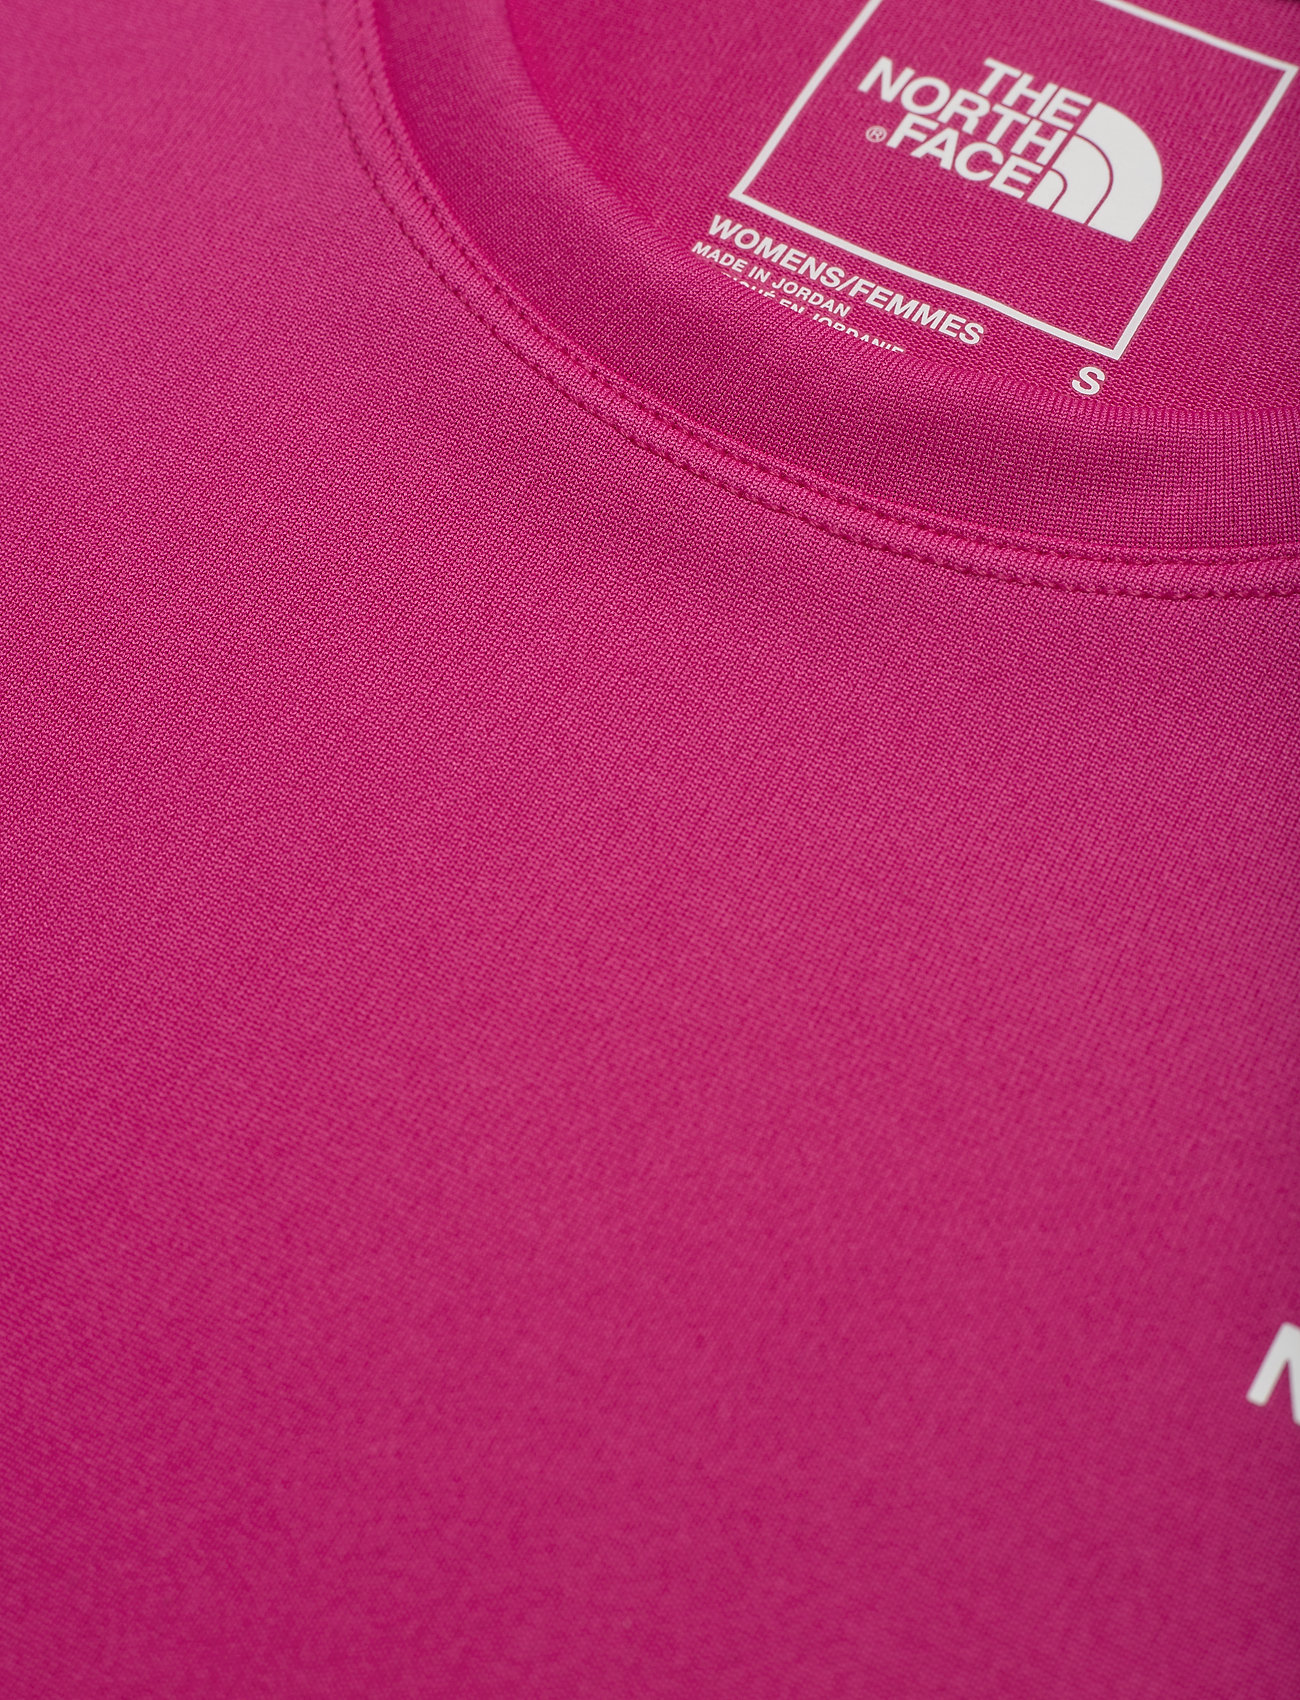 The North Face W REAXION AMP CREW - T-shirts & topper MR. PINK - Dameklær Spesialtilbud